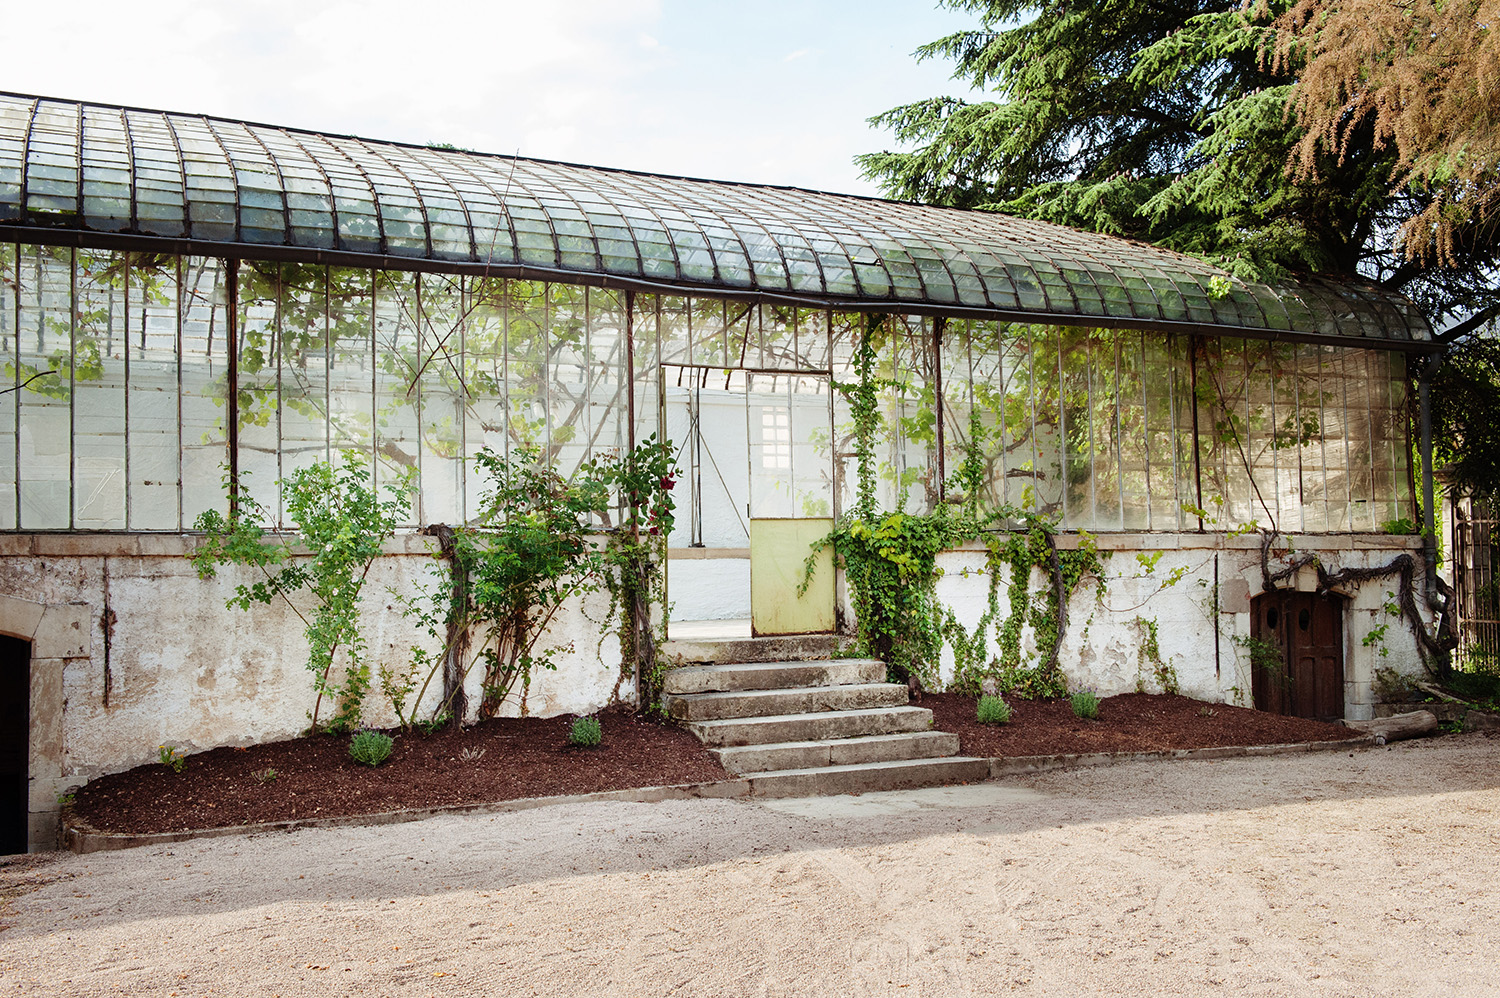 The rustic Orangerie, located in the courtyard of Château de Wintrange.